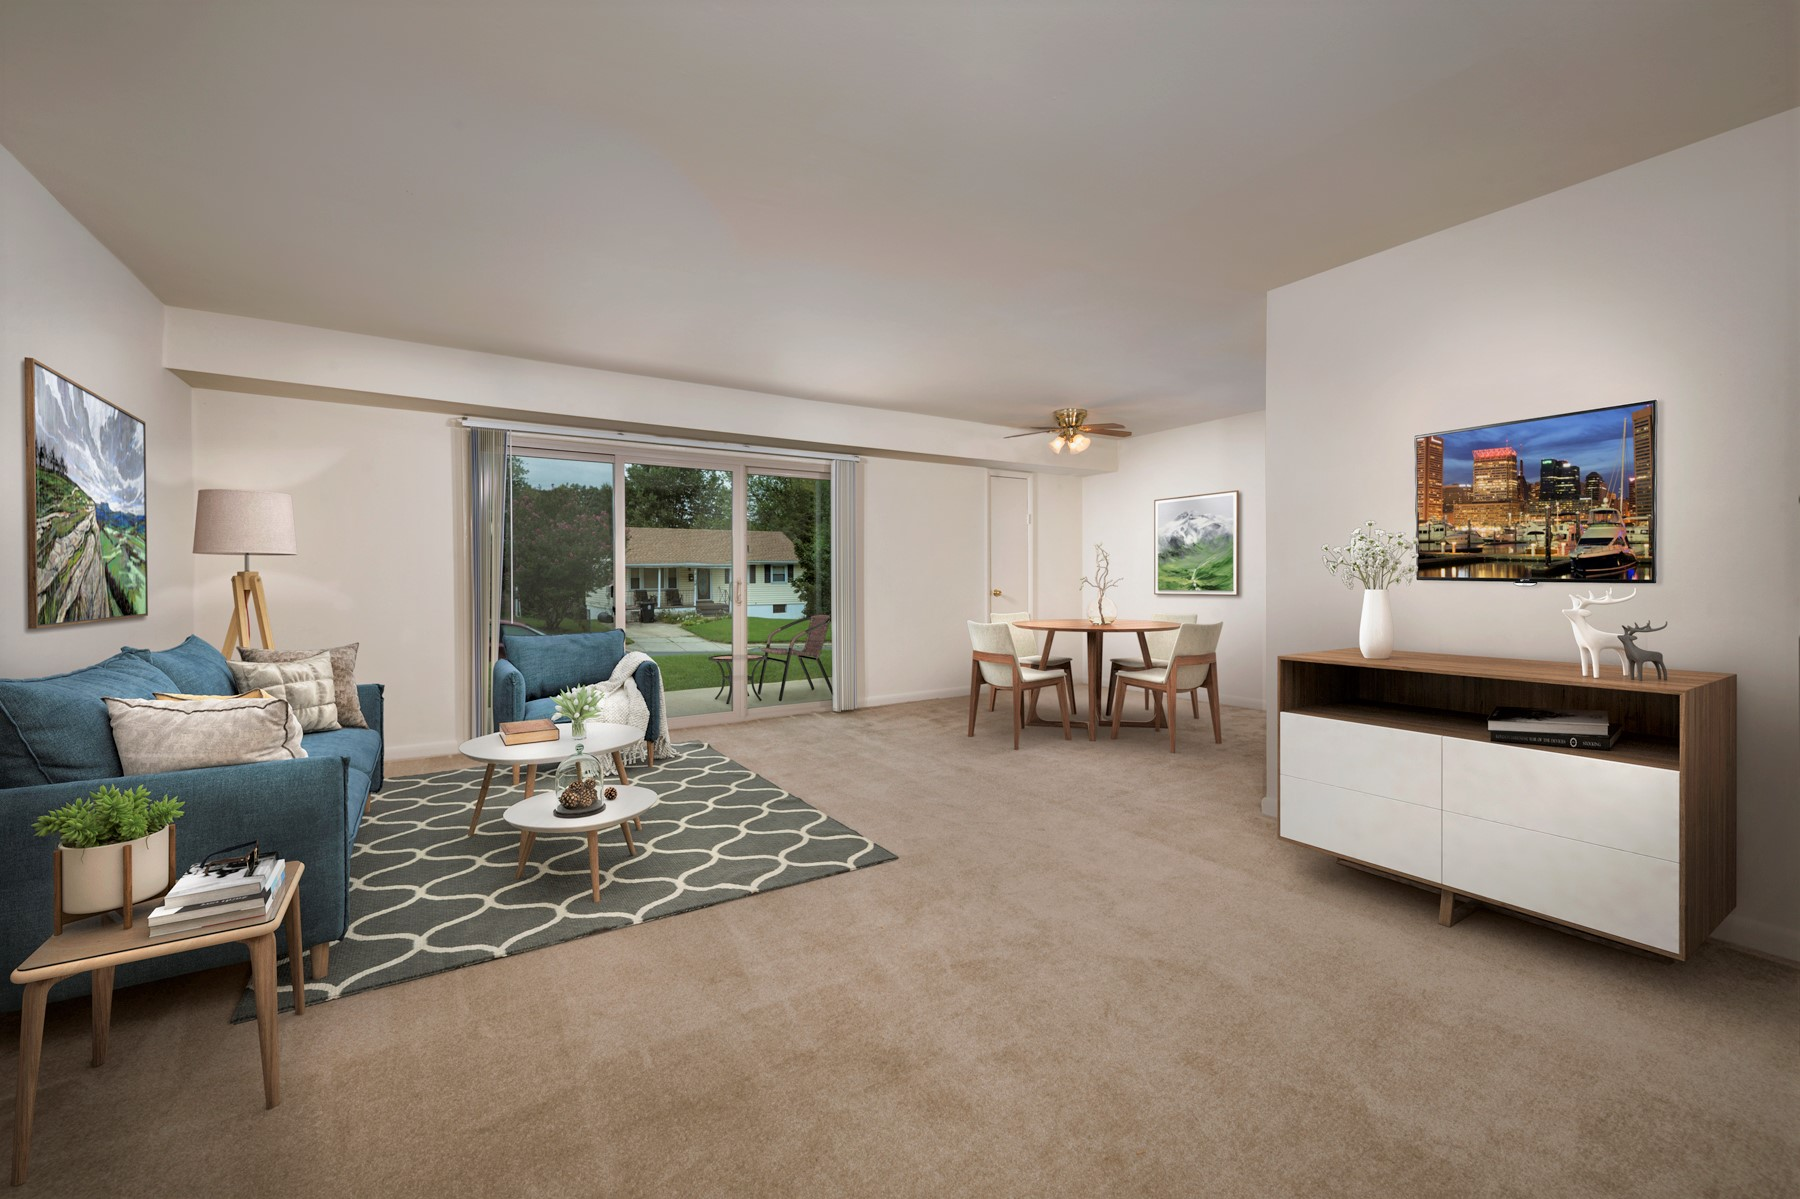 Spacious living and dining area at Columbia Park Apartments in Landover, MD